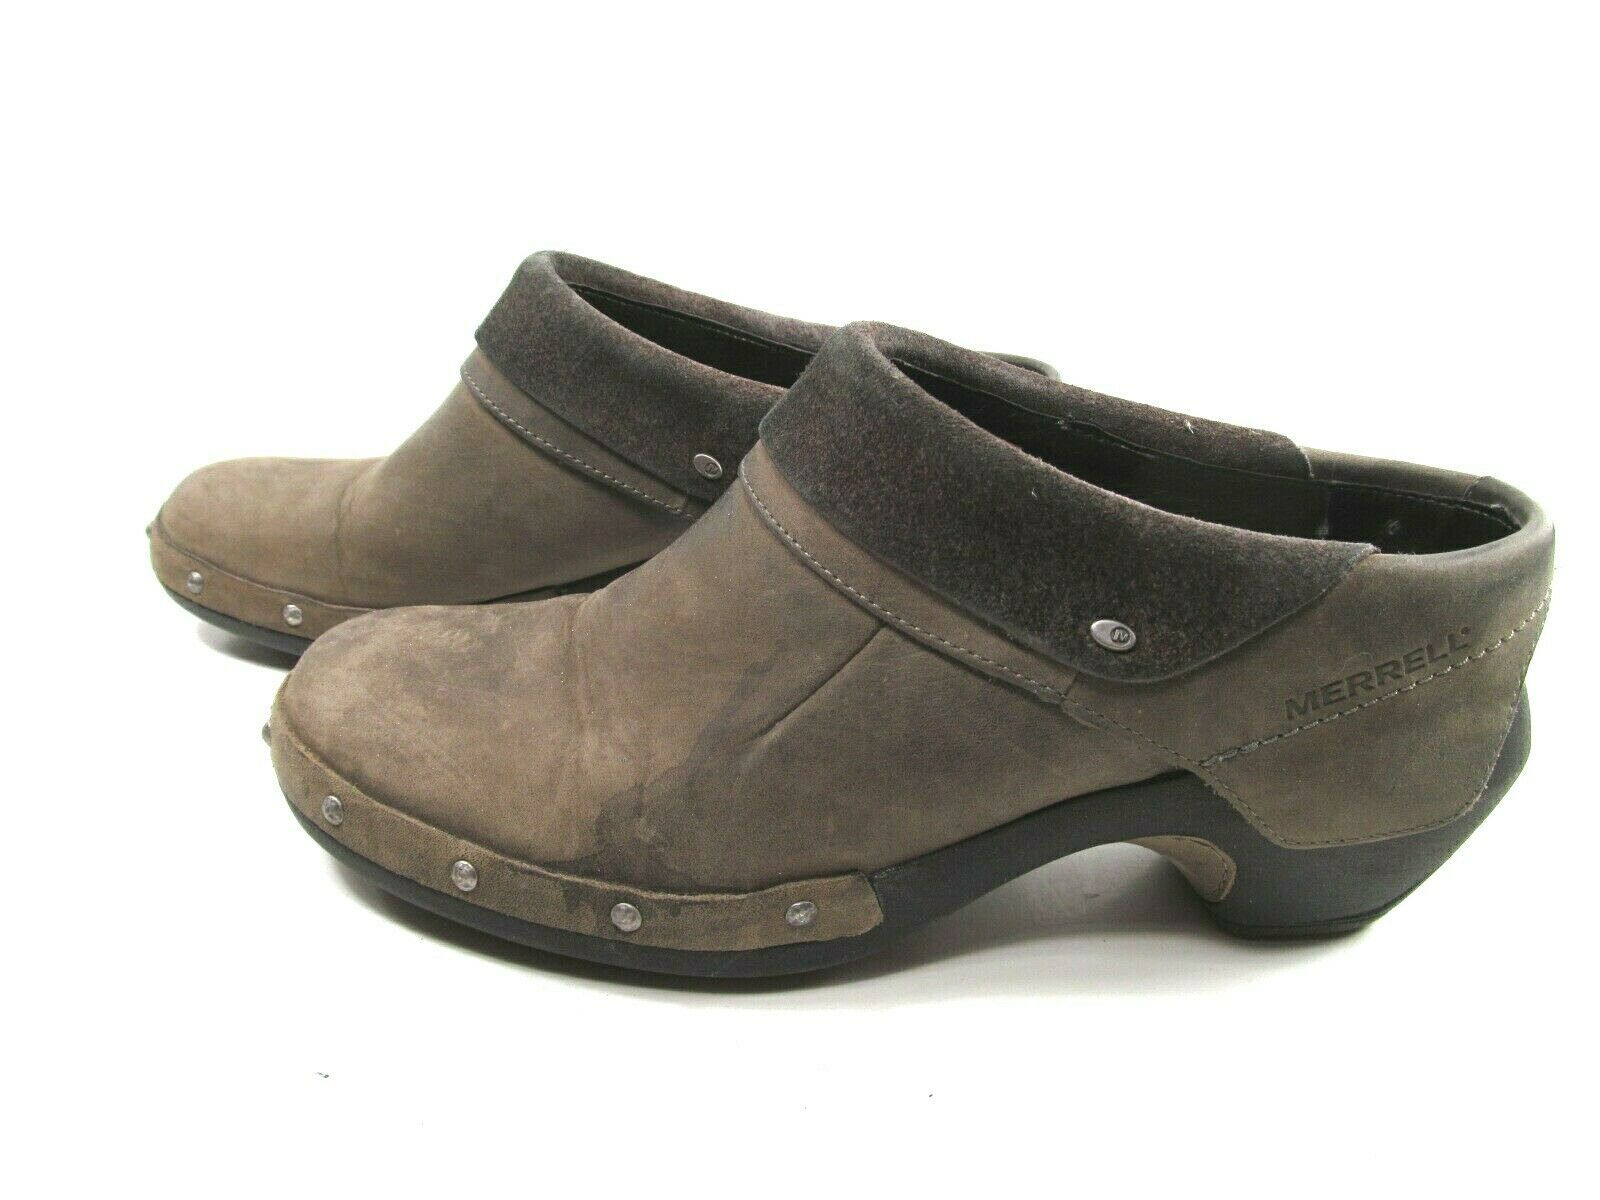 Merrell Drizzle Womens Taupe Leather Studded Slip On Clogs Size US 8 EUR38.5